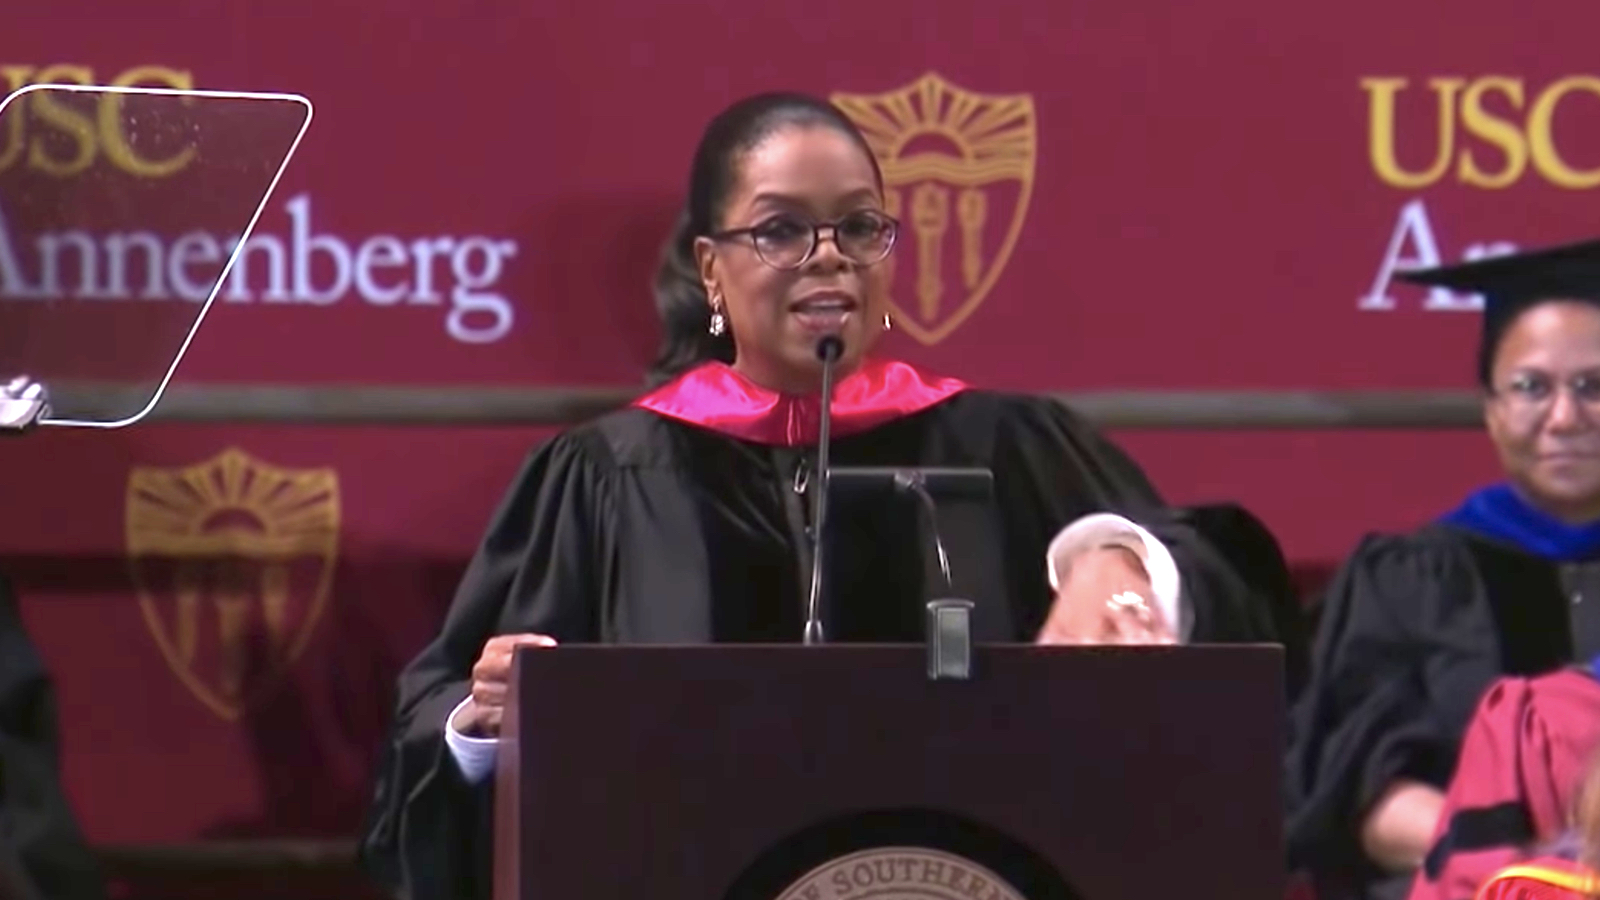 Oprah Winfrey to USC's Class of 2018: 'Declare war on cynicism'